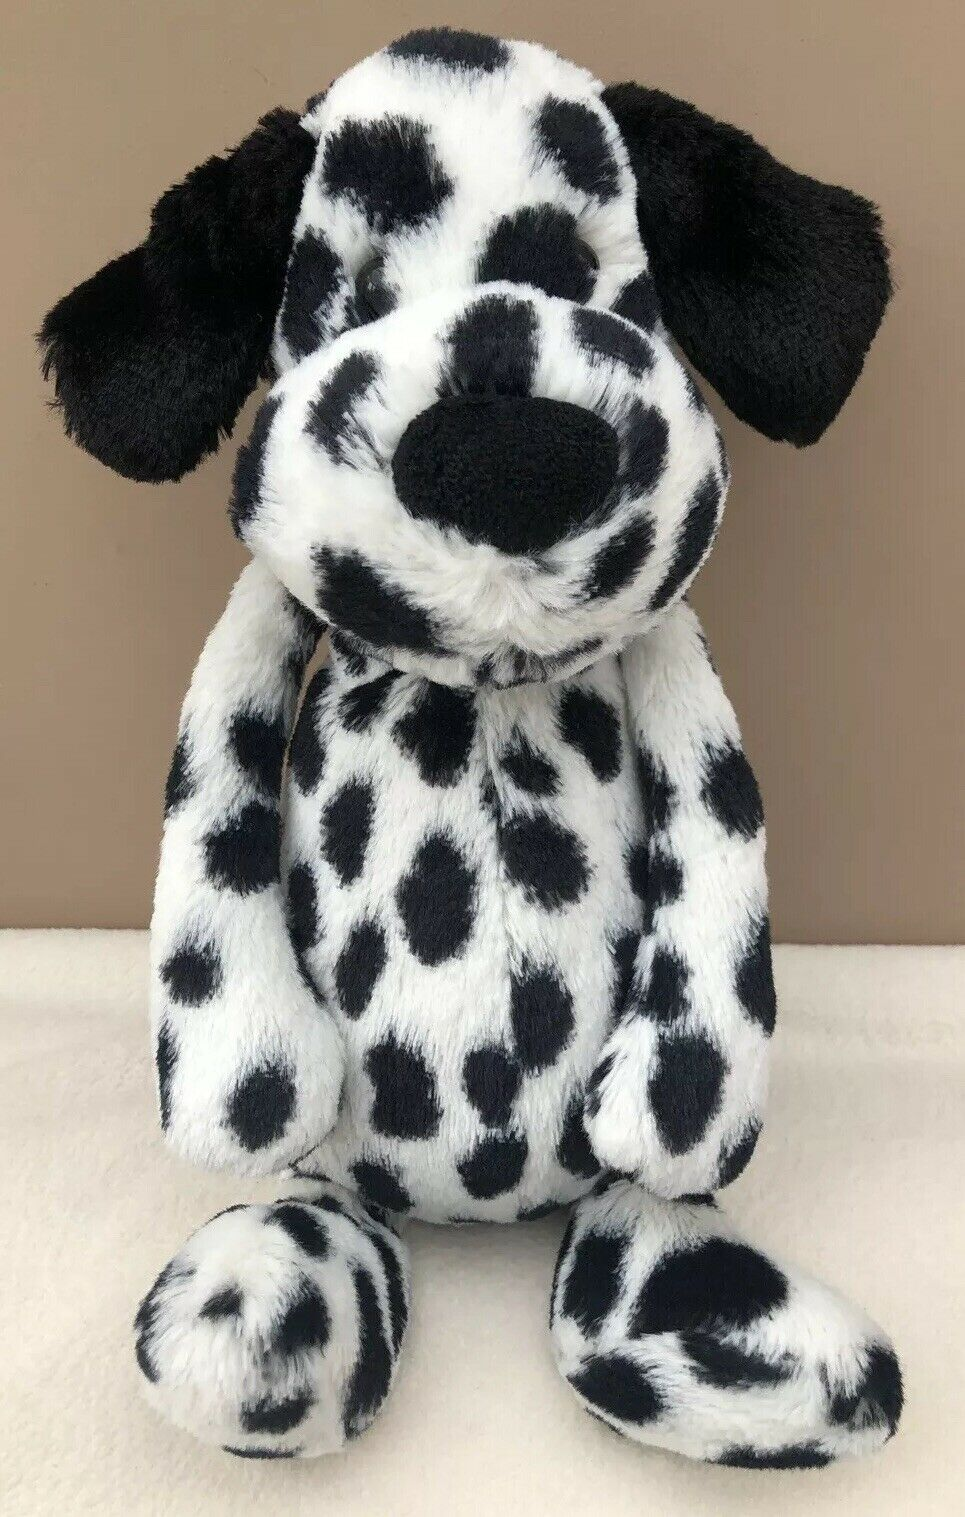 Jellycat Bashful Dalmatian Puppy Dog Baby Soft Soft Soft Toy Comforter Dalmation Spotty da6